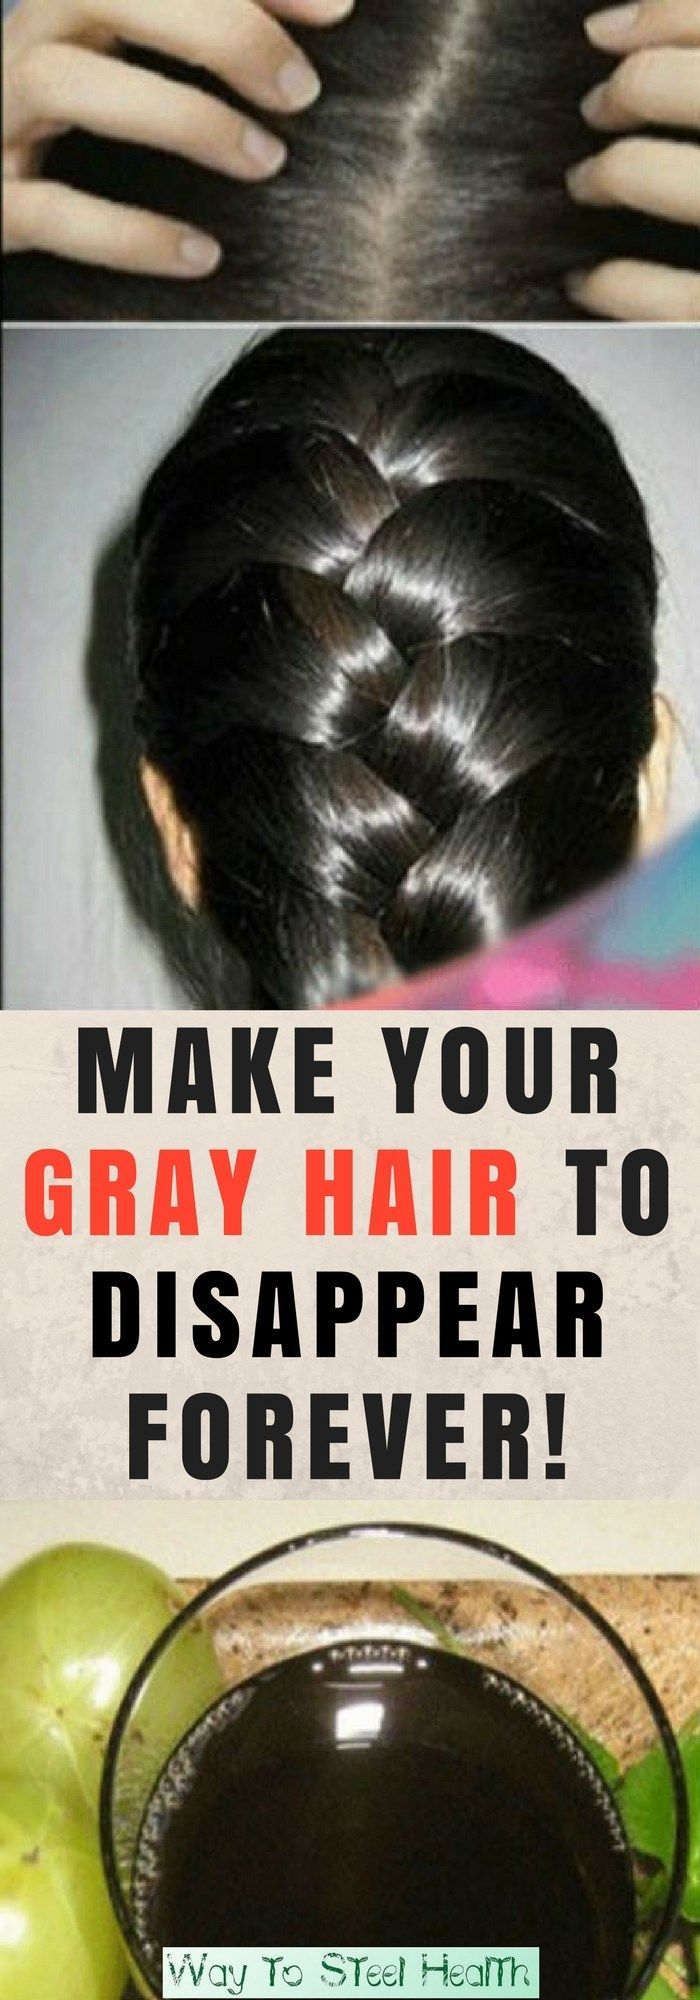 Why does your hair start growing gray? As you age, your hair follicles tend to slow down its ability to produce melanin and this causes the hair to turn white or grey. It is normal for aging people to have gray hair but it can become a problem if you start growing gray hair too... Continue Reading →